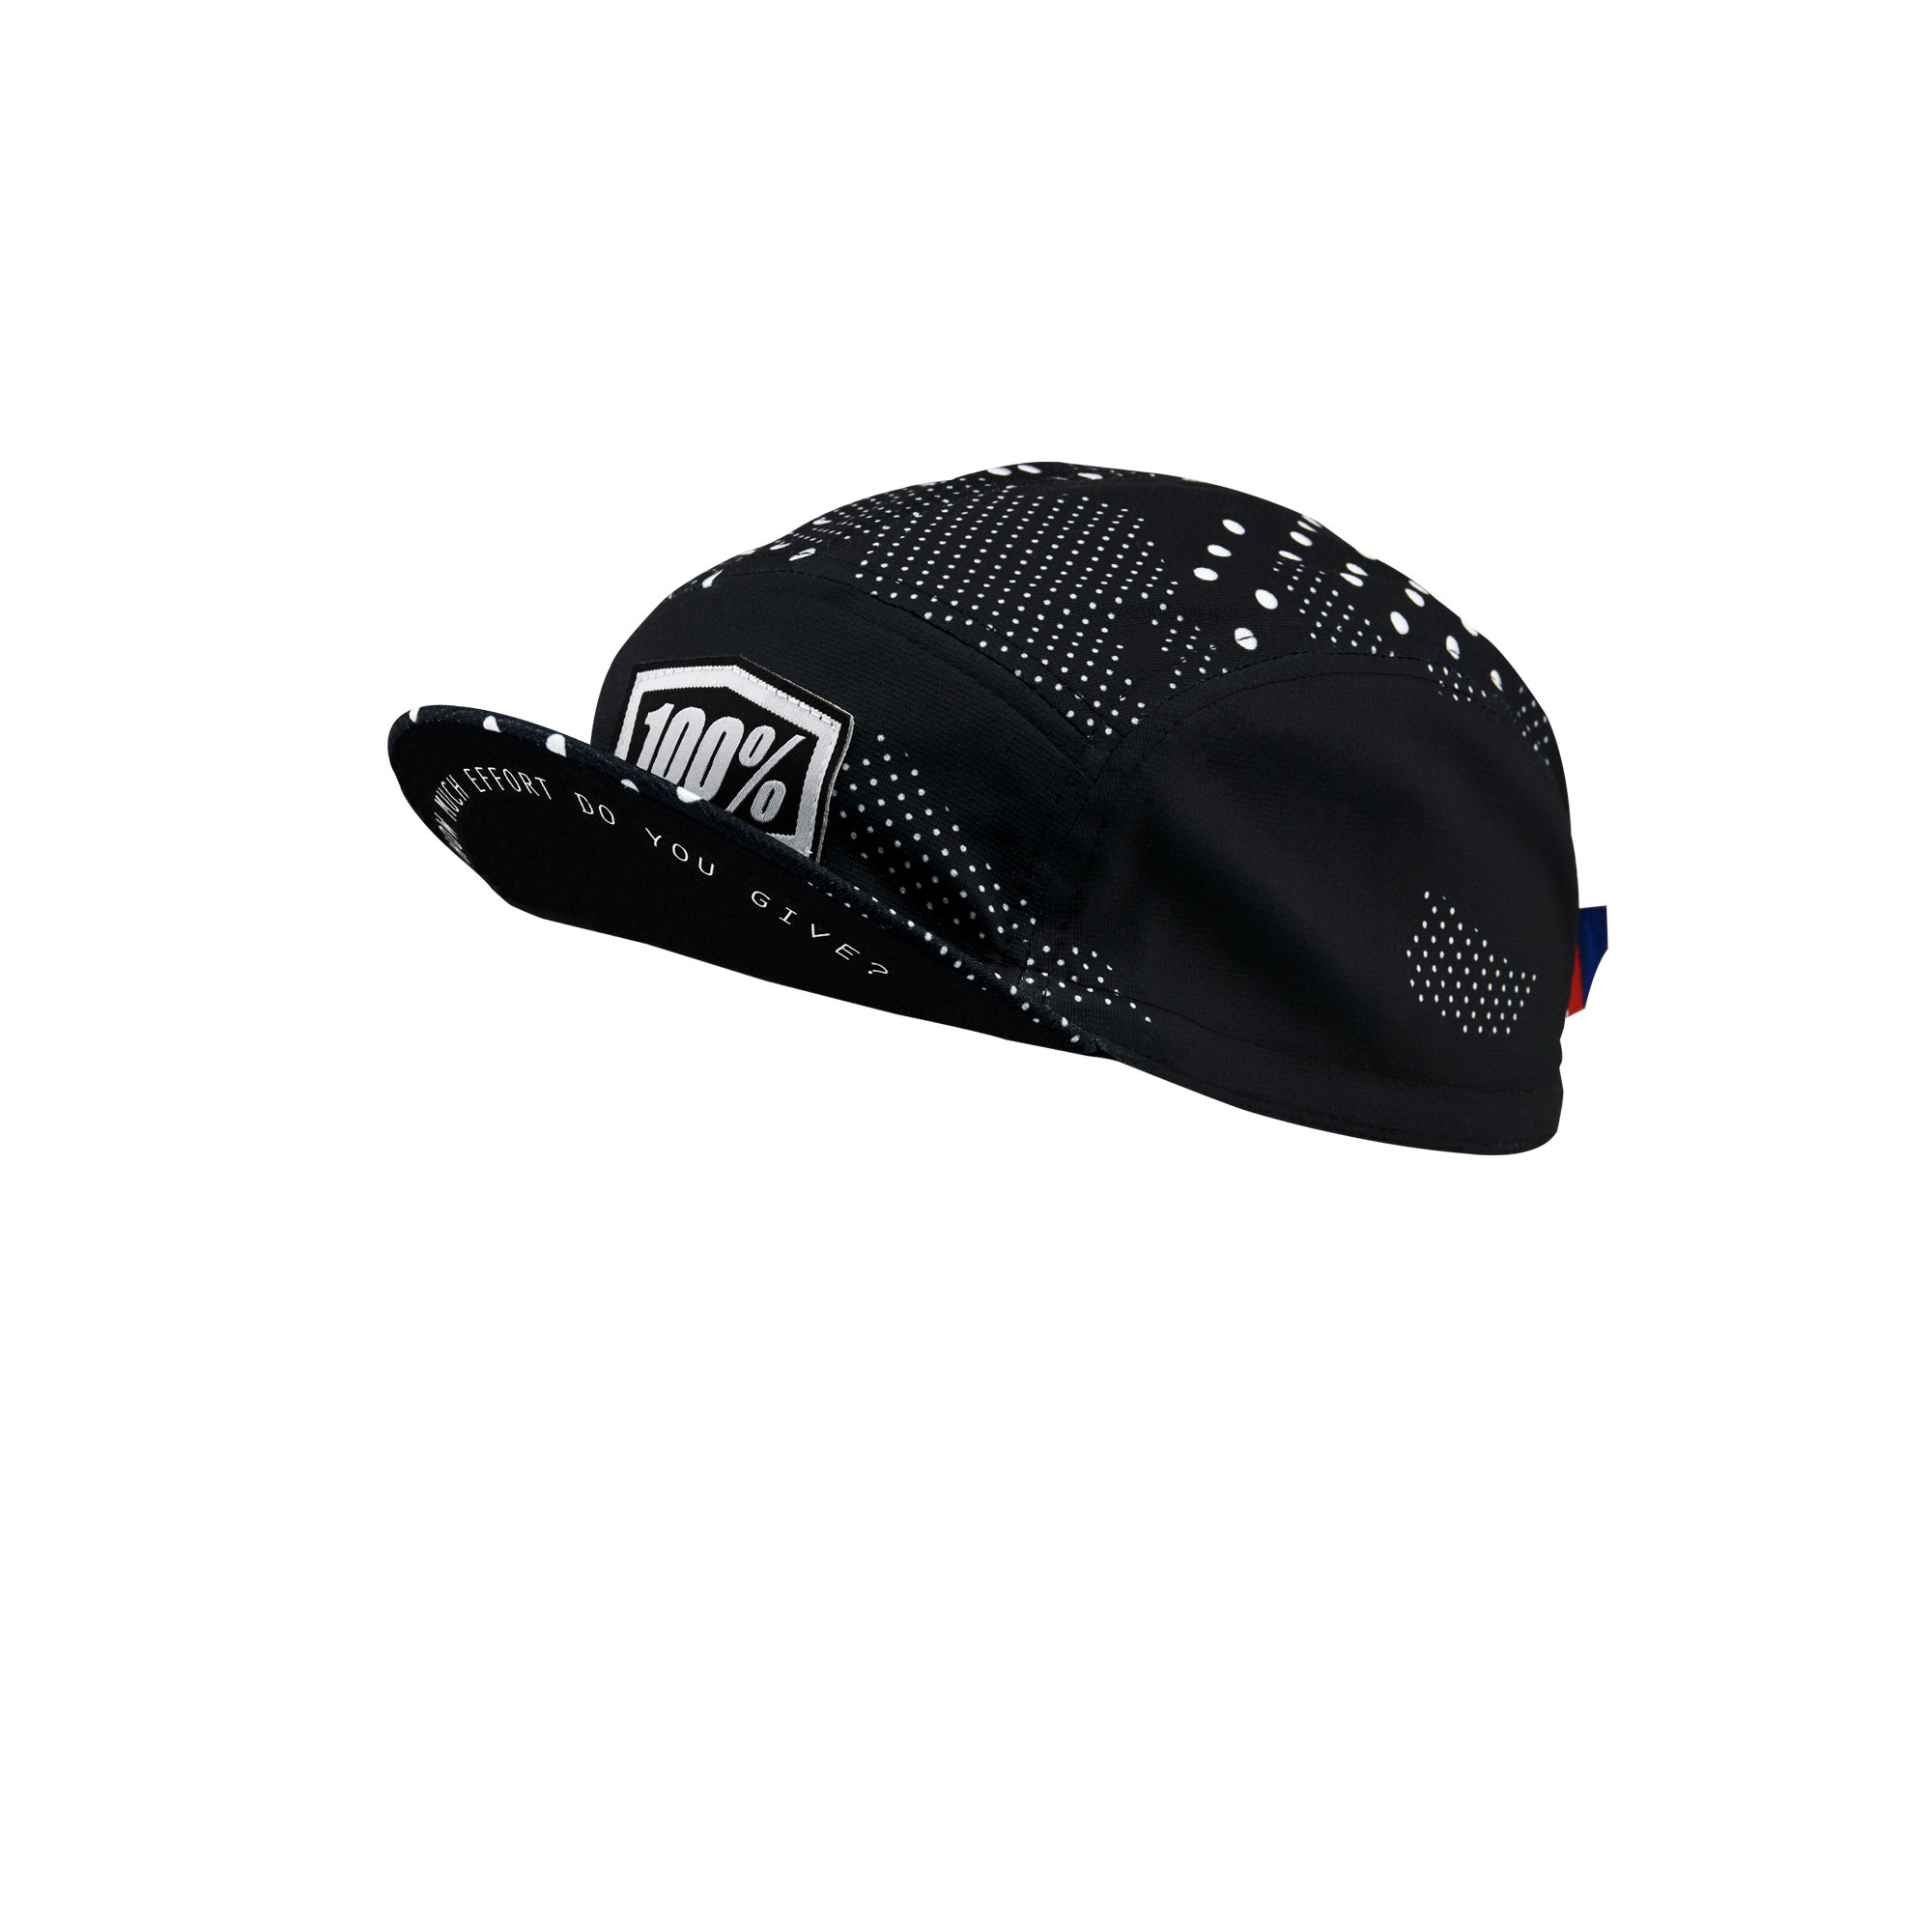 100% Exceeda Cap Black-1